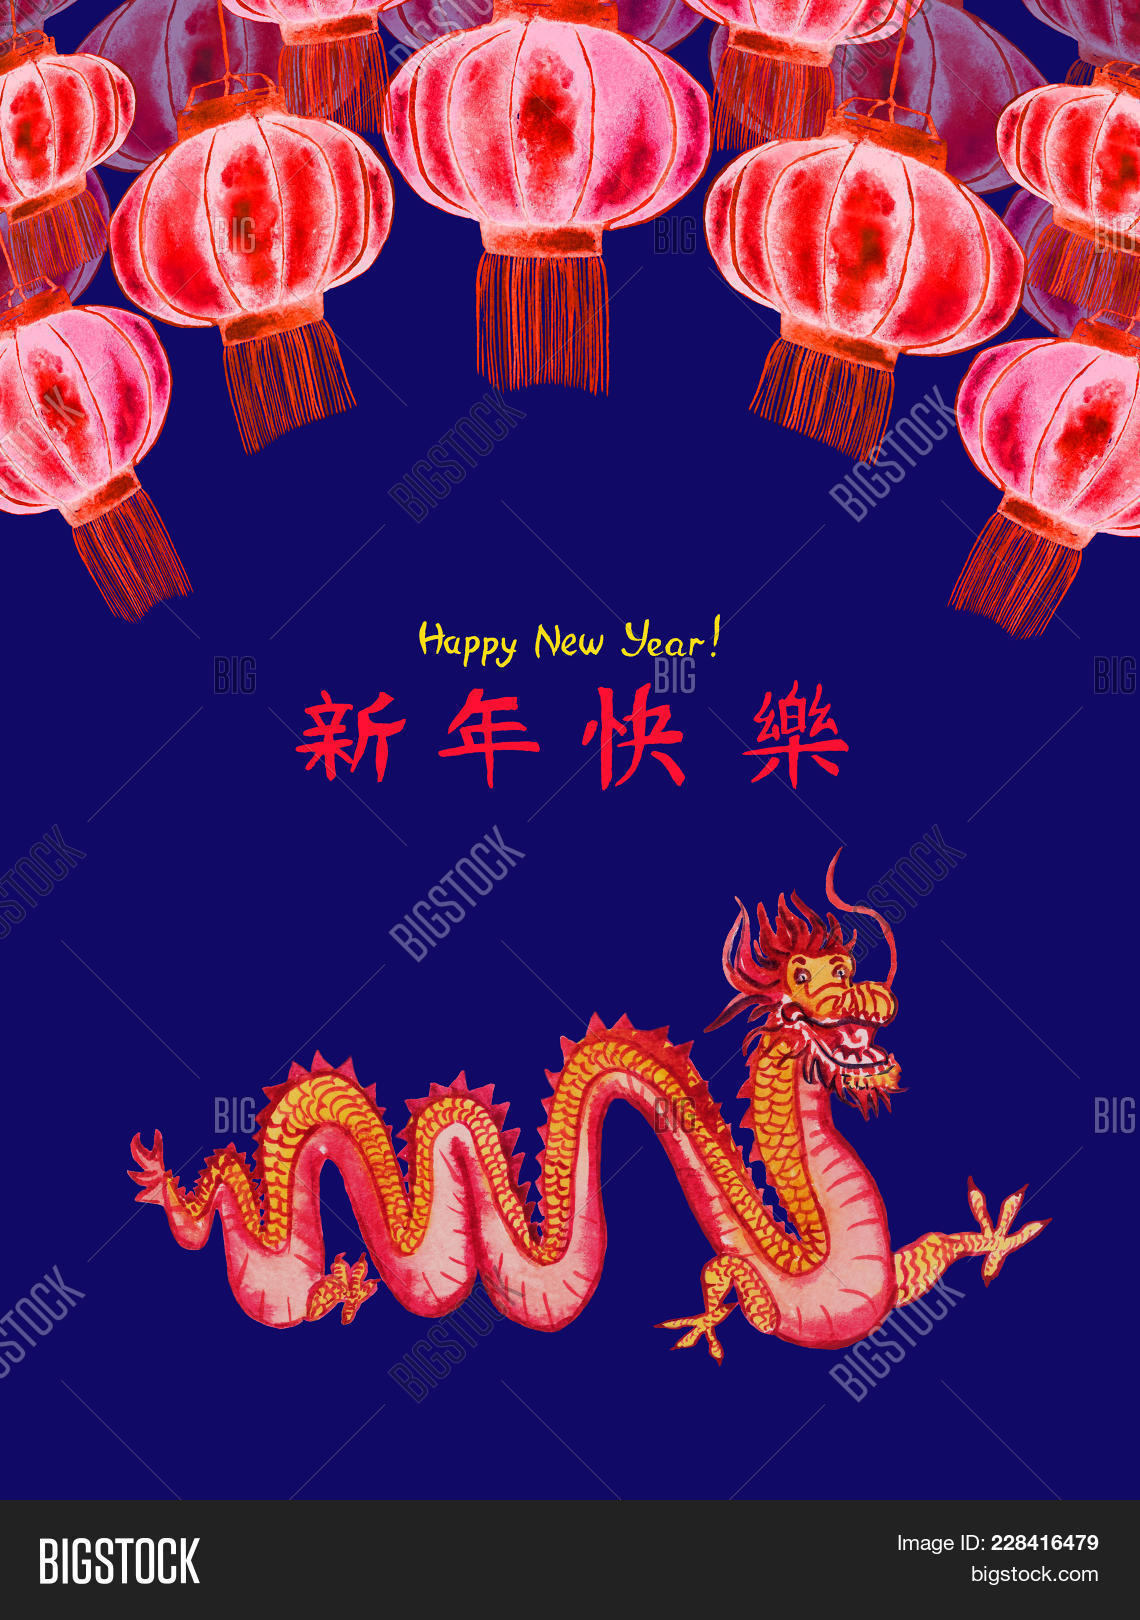 Chinese New Year Image Photo Free Trial Bigstock